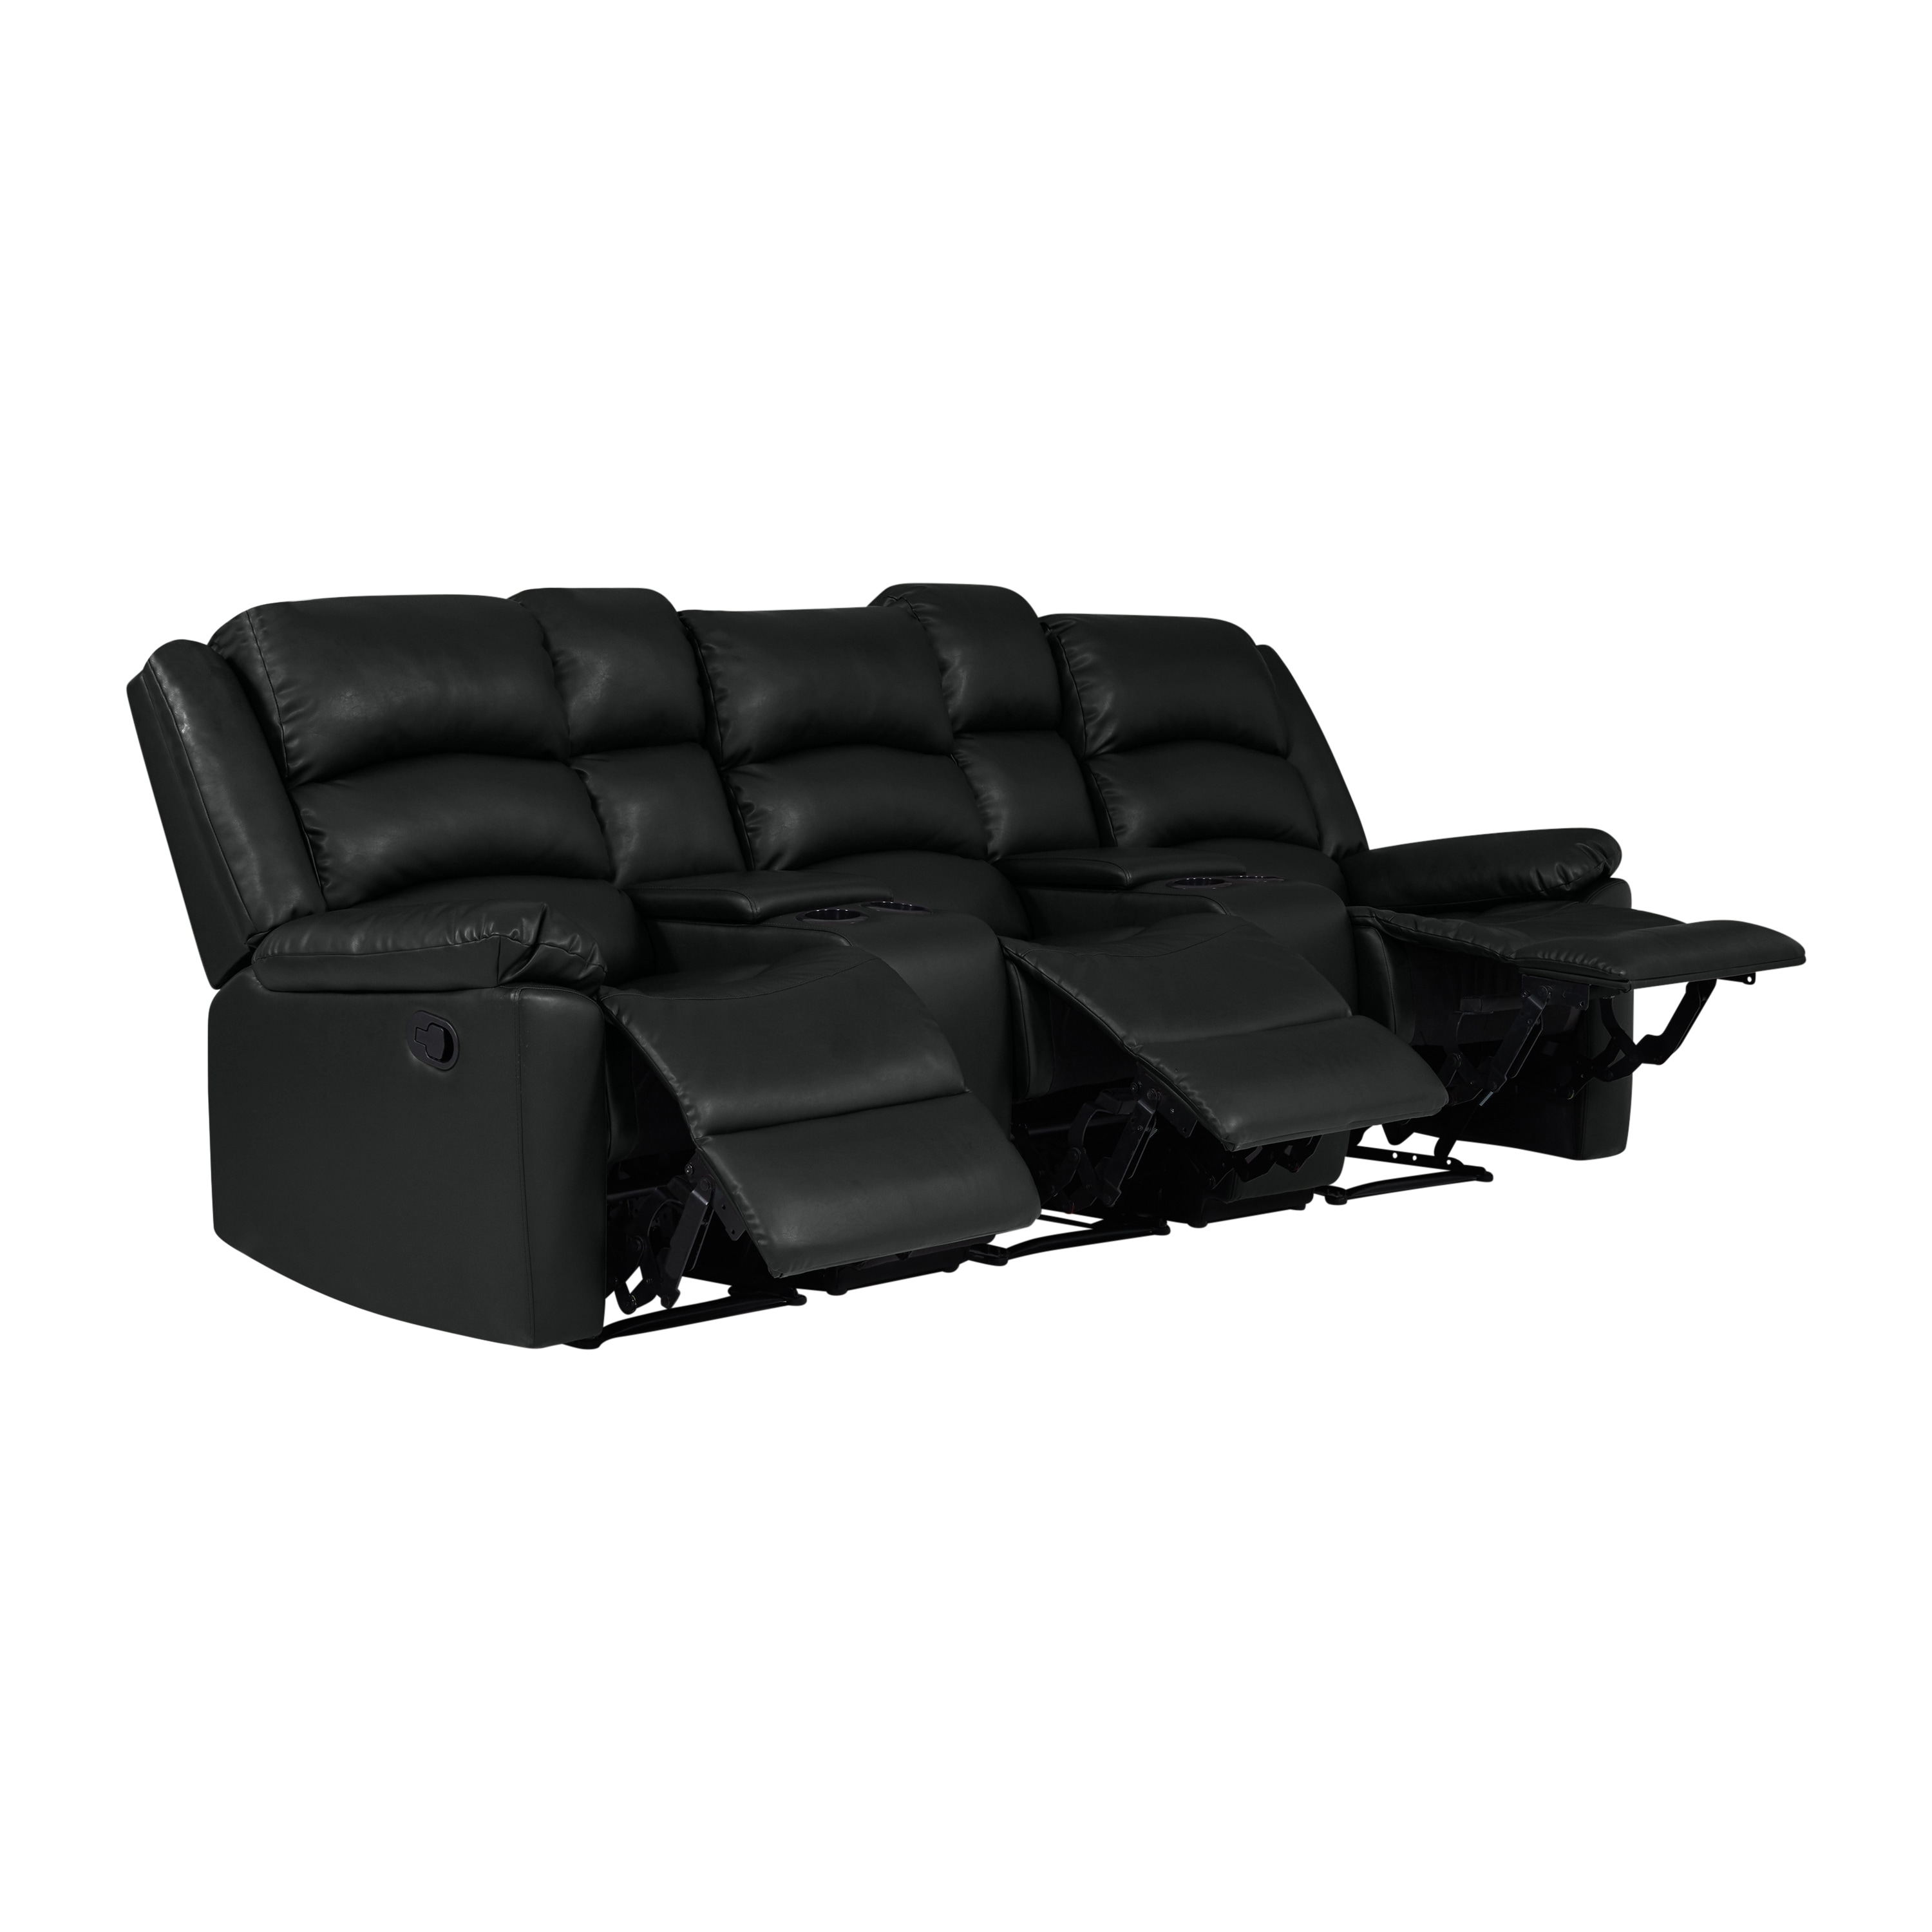 Recliner Pillow Details About Prolounger 3 Seat Pillow Top Arm Recliner Sofa With Power Storage Console